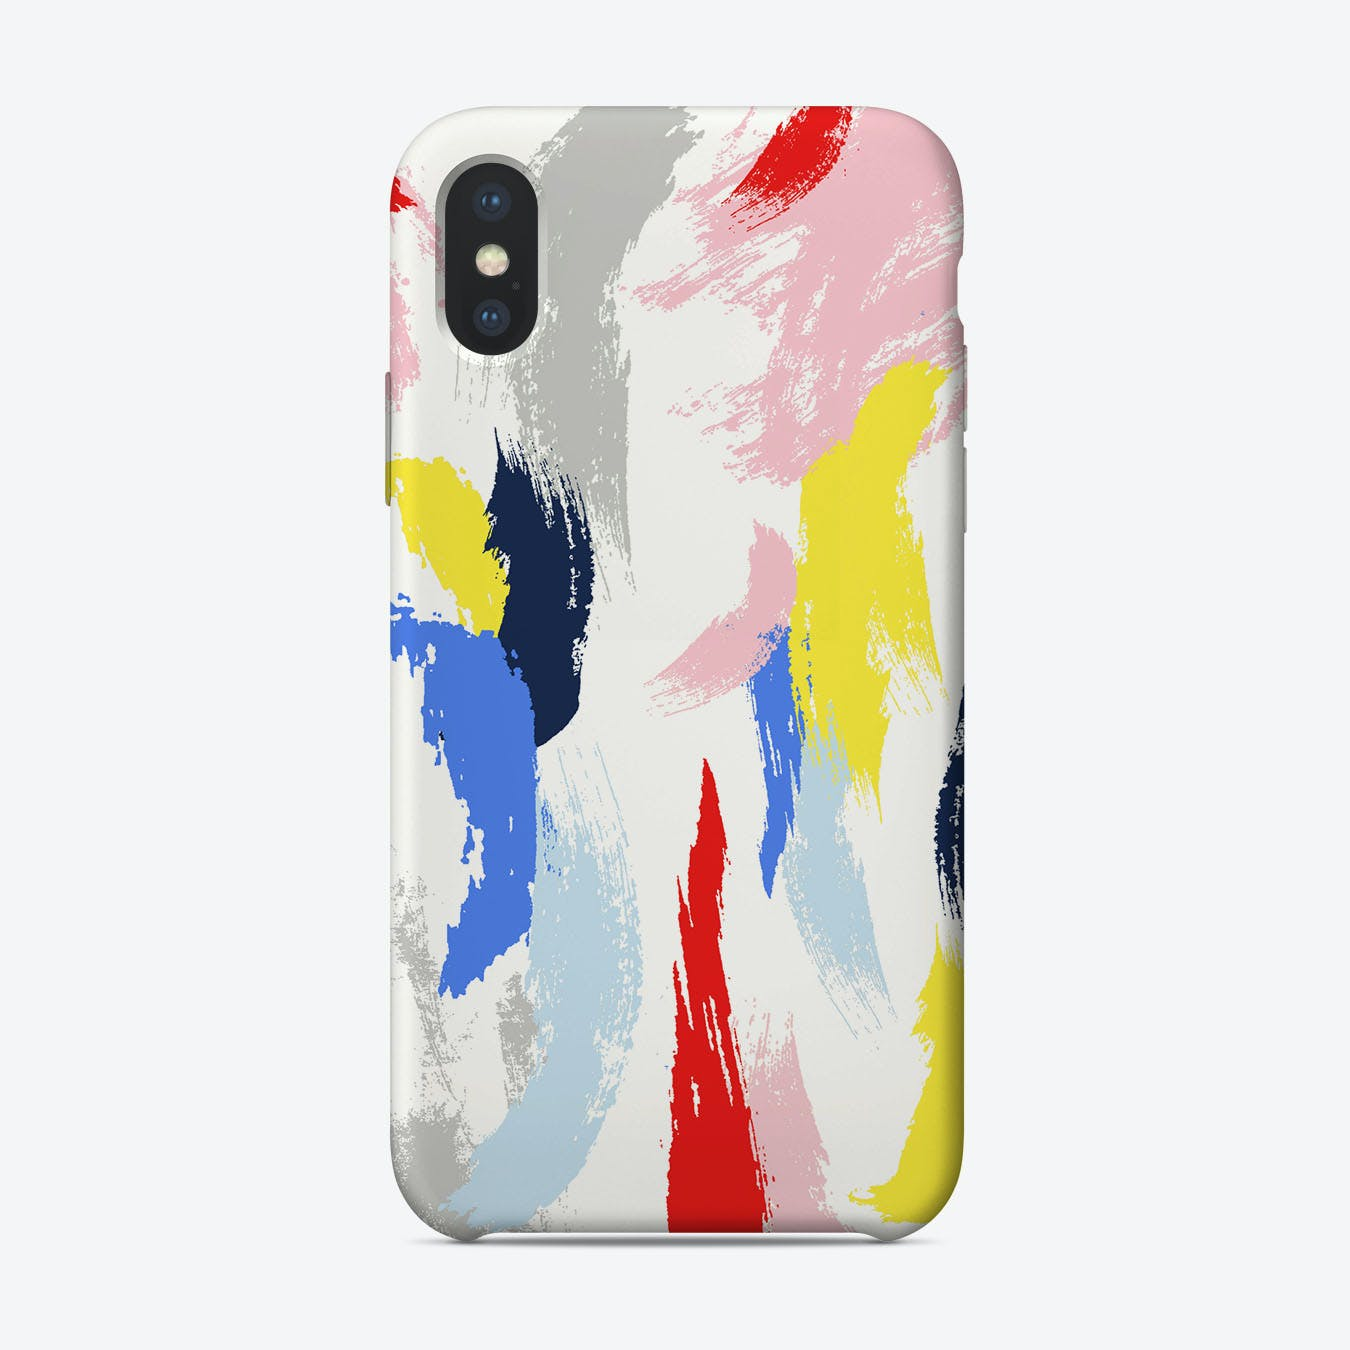 Painted Marks iPhone Case